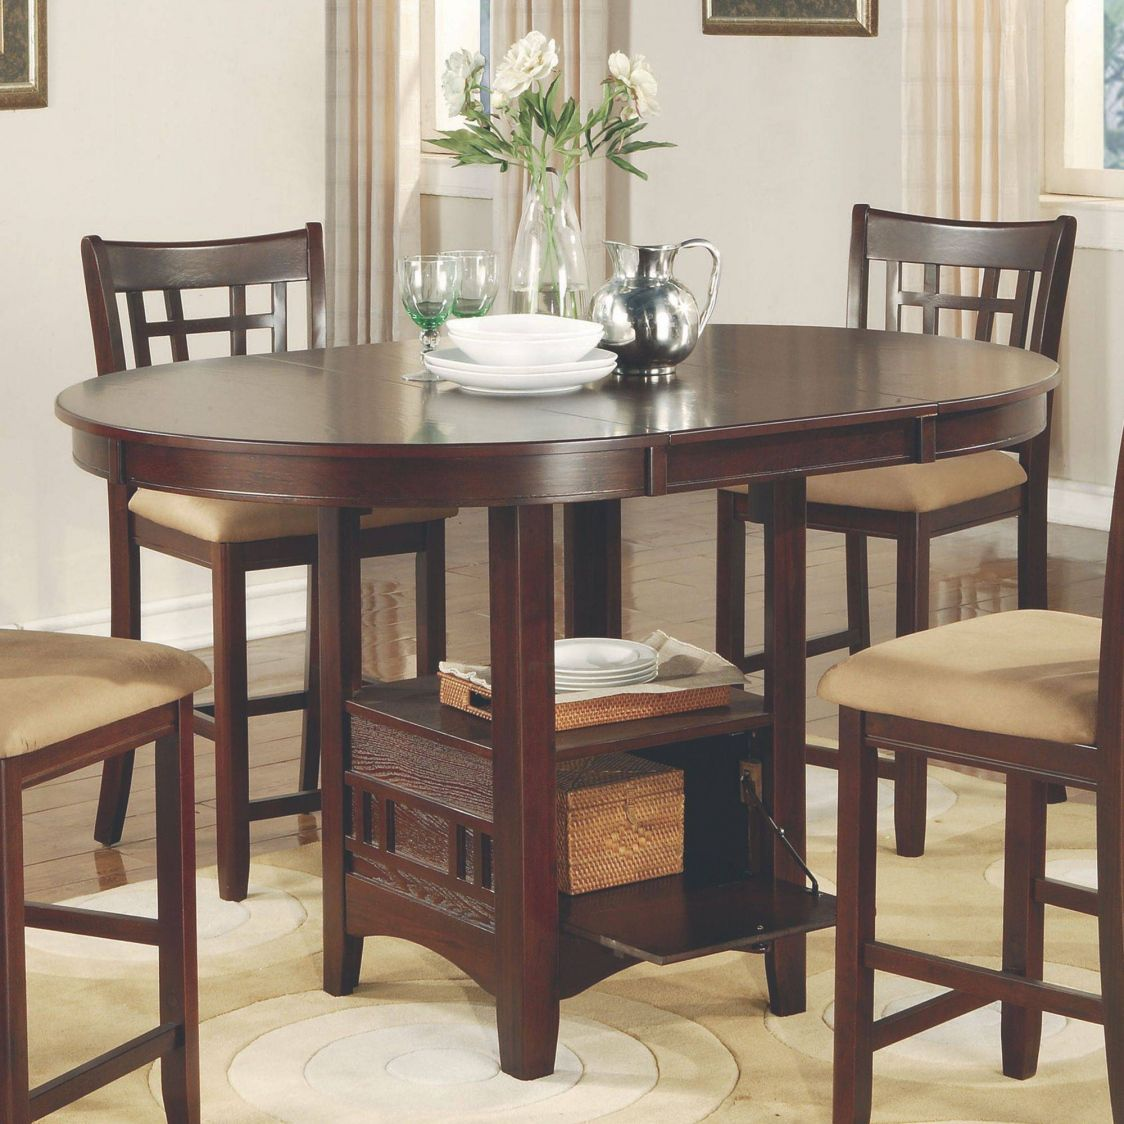 Explore Kitchen Table Chairs Kitchen Seating and more! Tall Dining Room Table Sets ... & Tall Dining Room Table Sets - Best Color Furniture for You Check ...